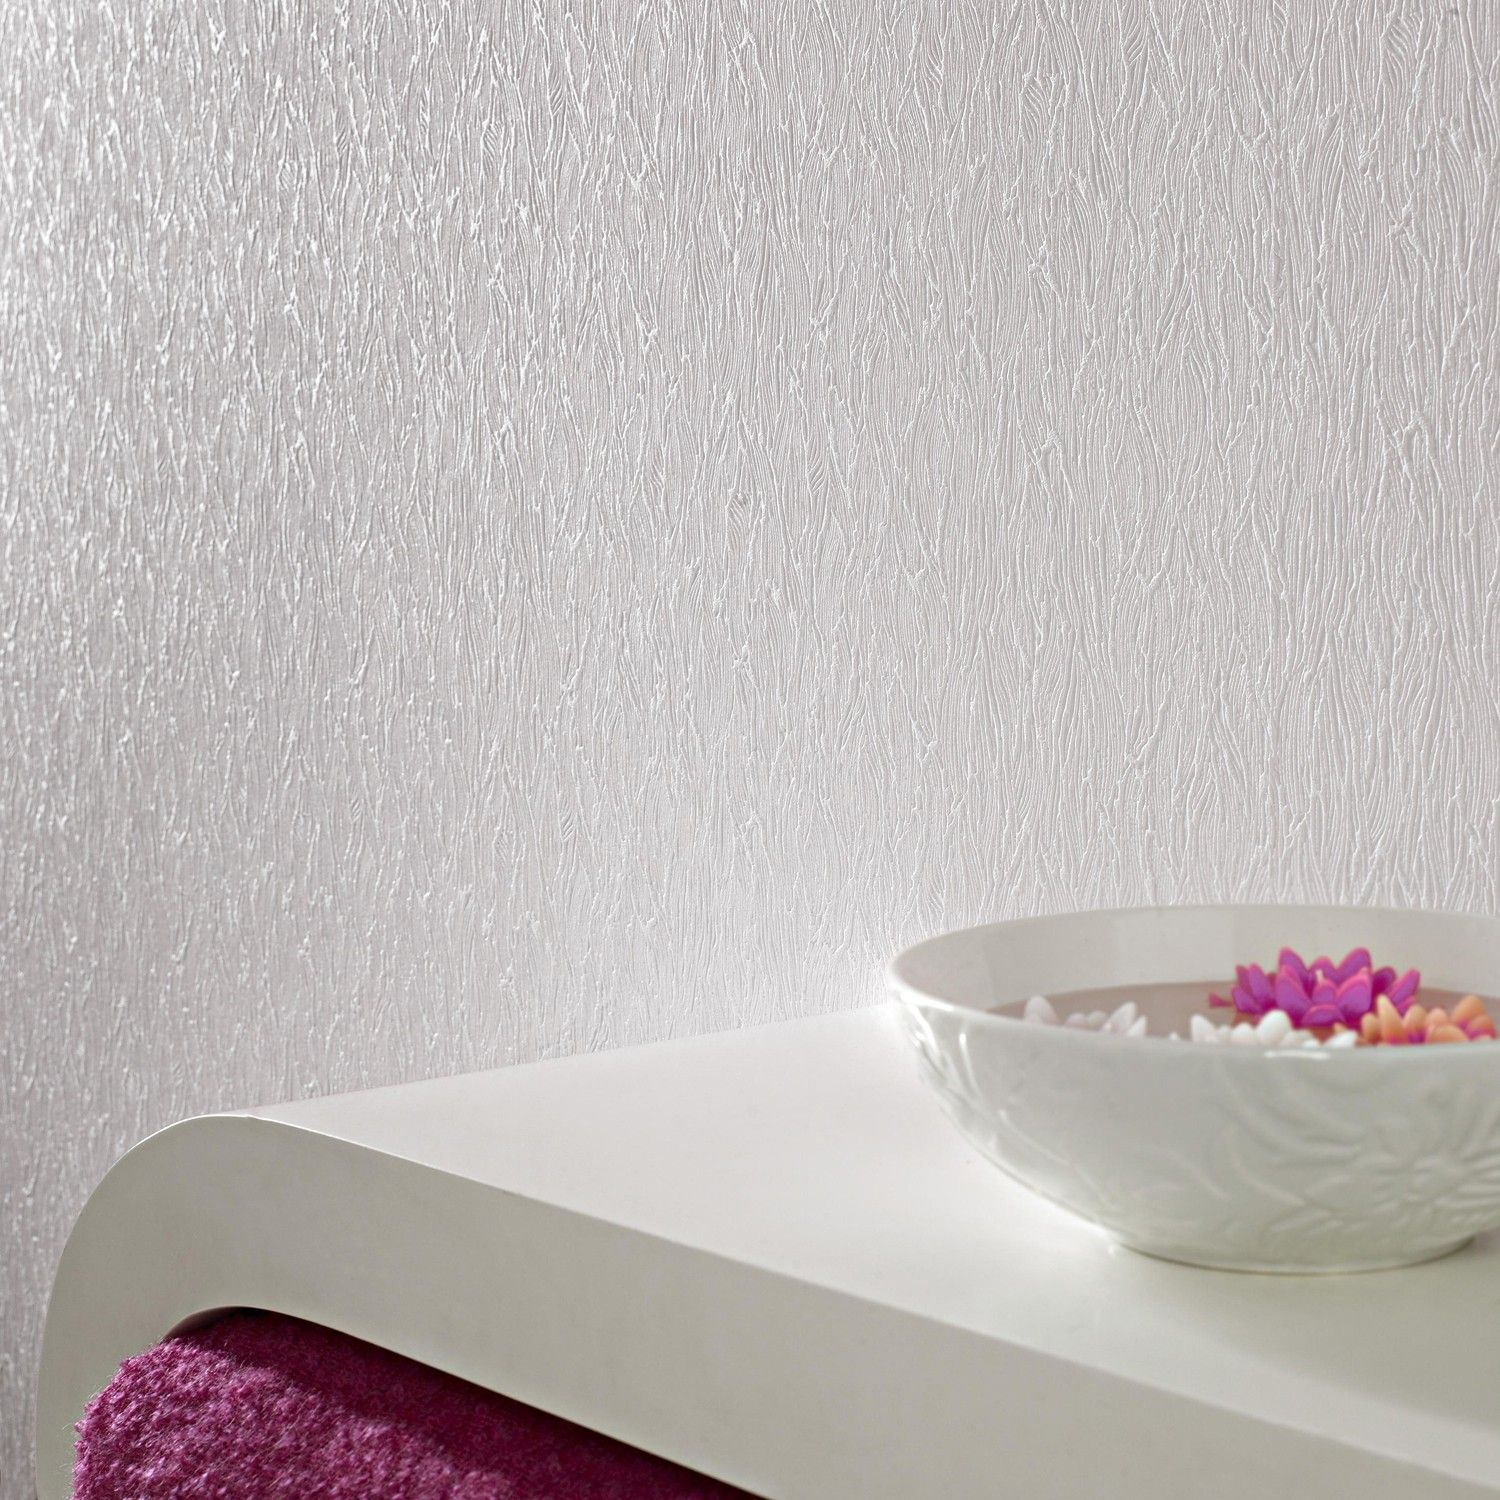 Textured wallpaper looks fresh and bright when left